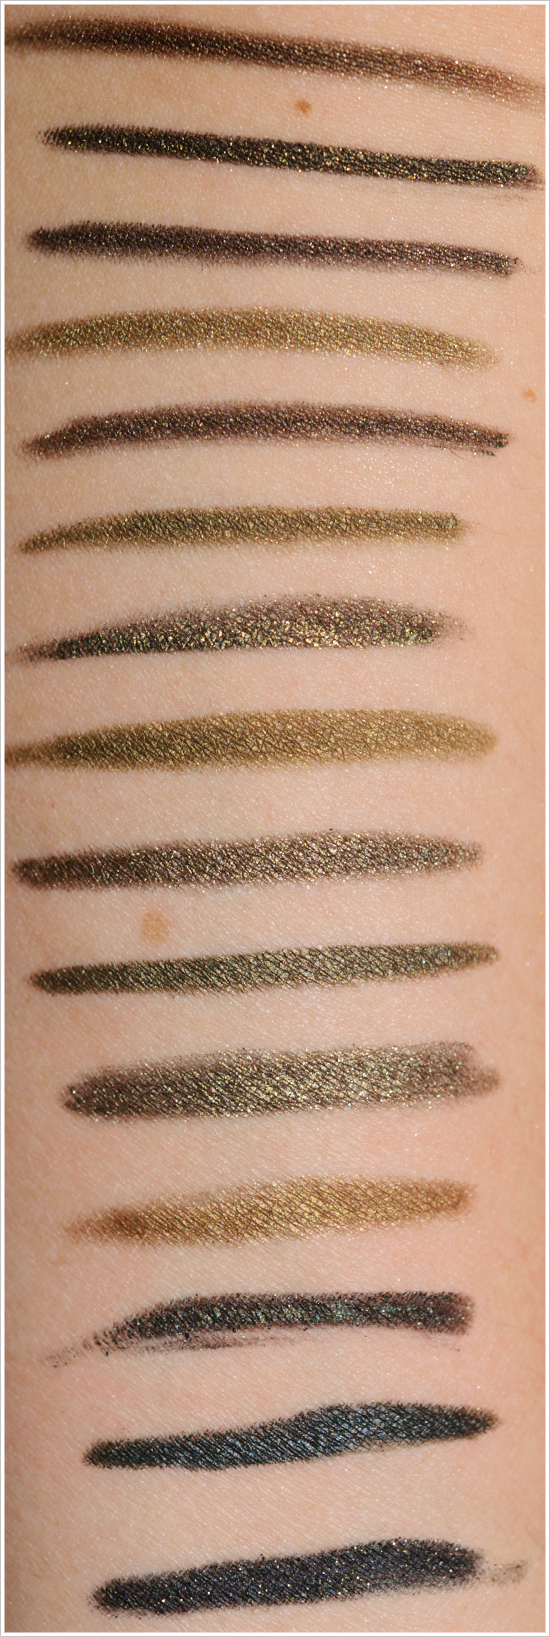 olive green eyeliners: swatches, dupes, and comparisons